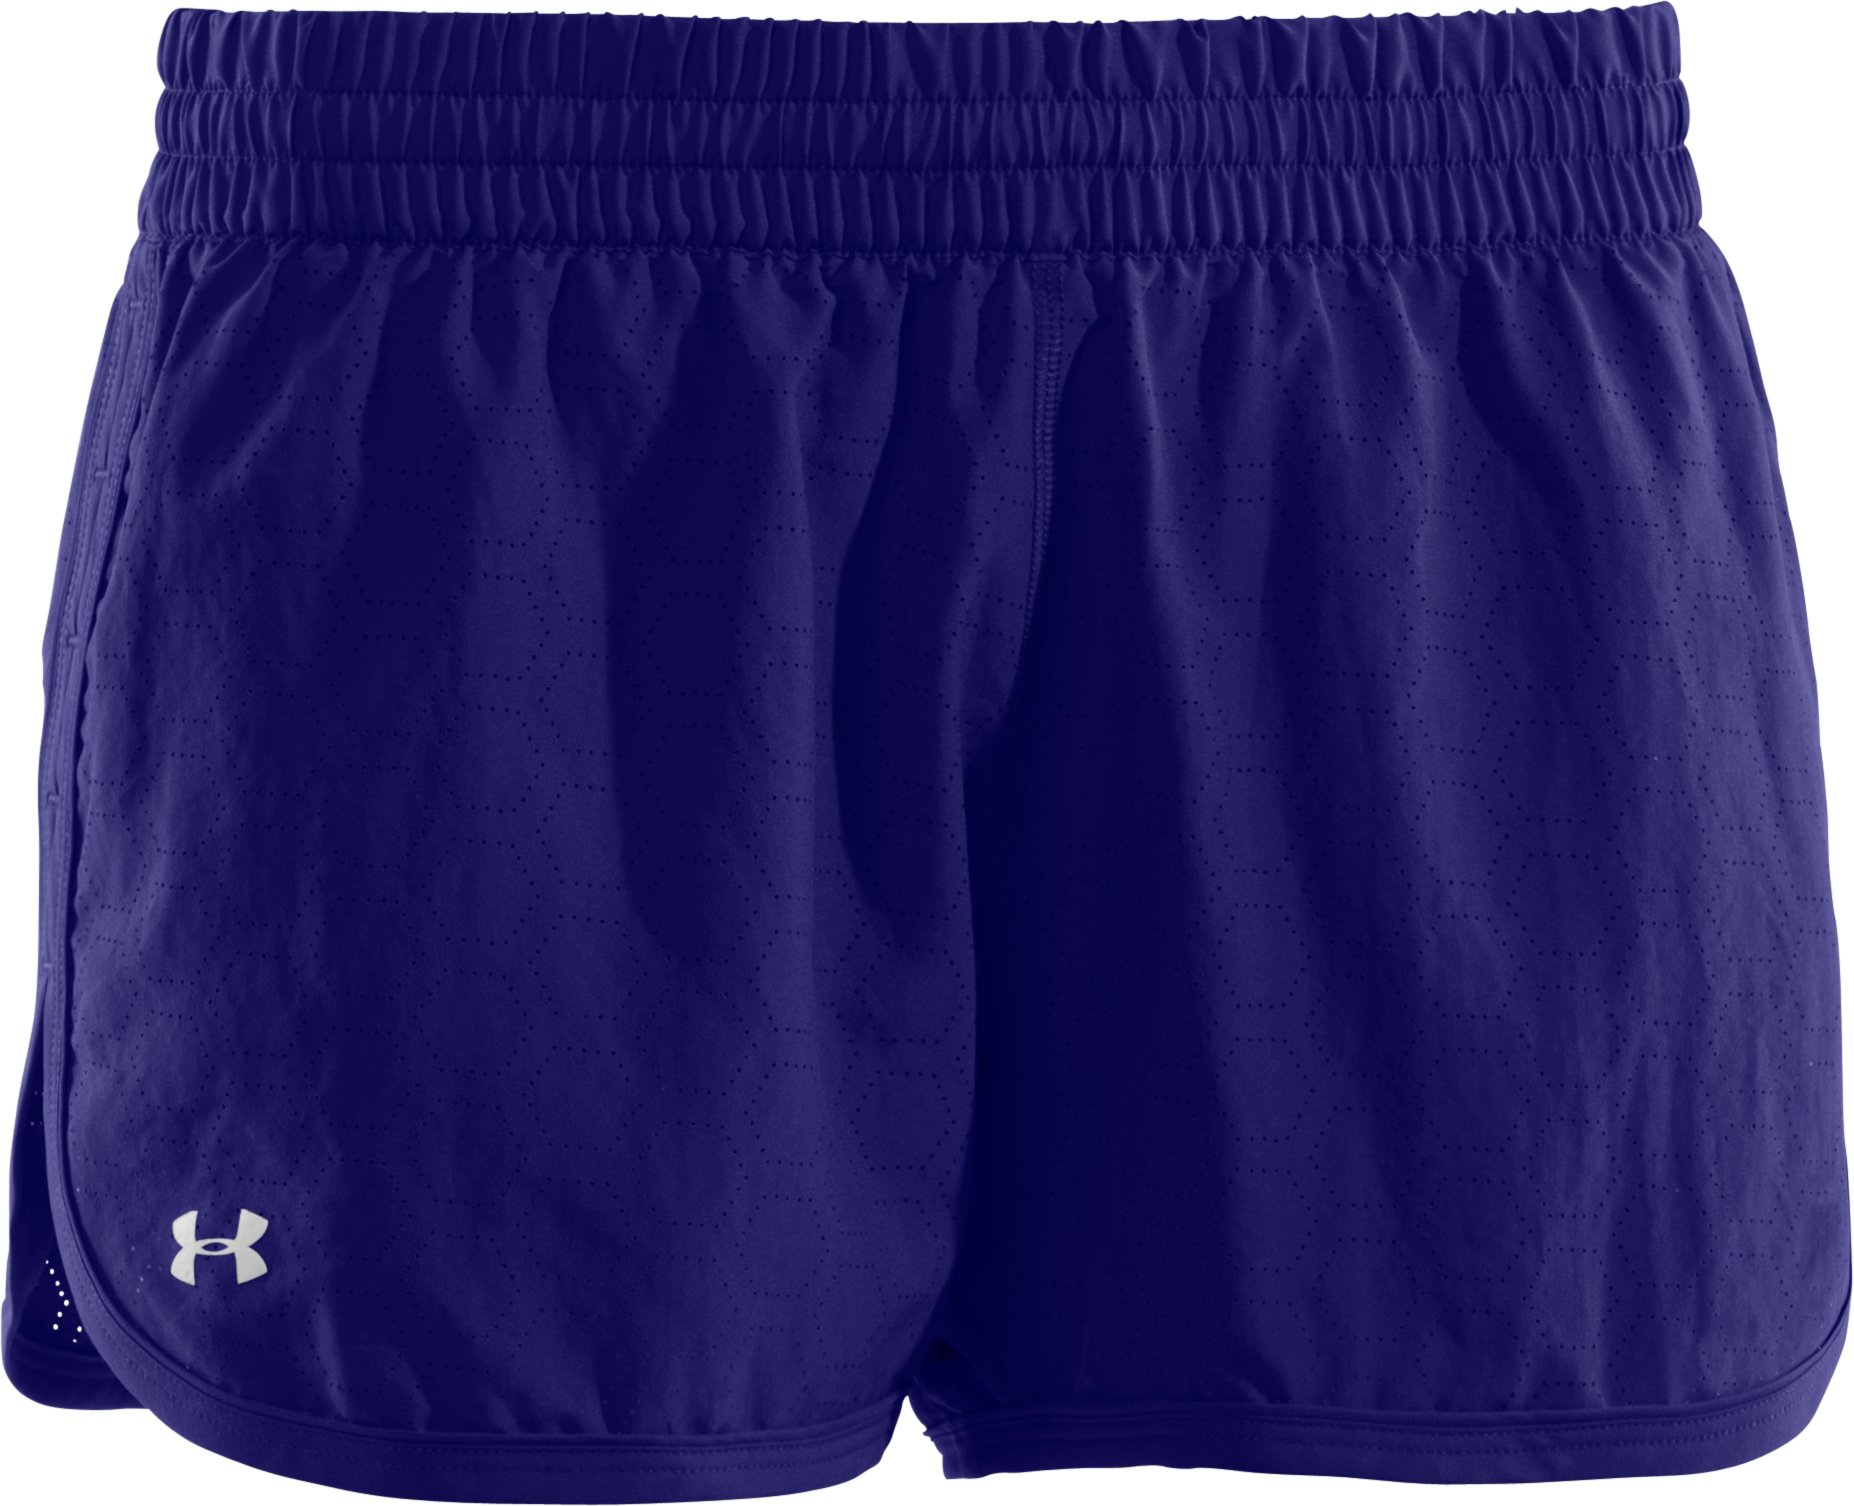 Women's Perforated UA Great Escape Shorts II, Monarchy